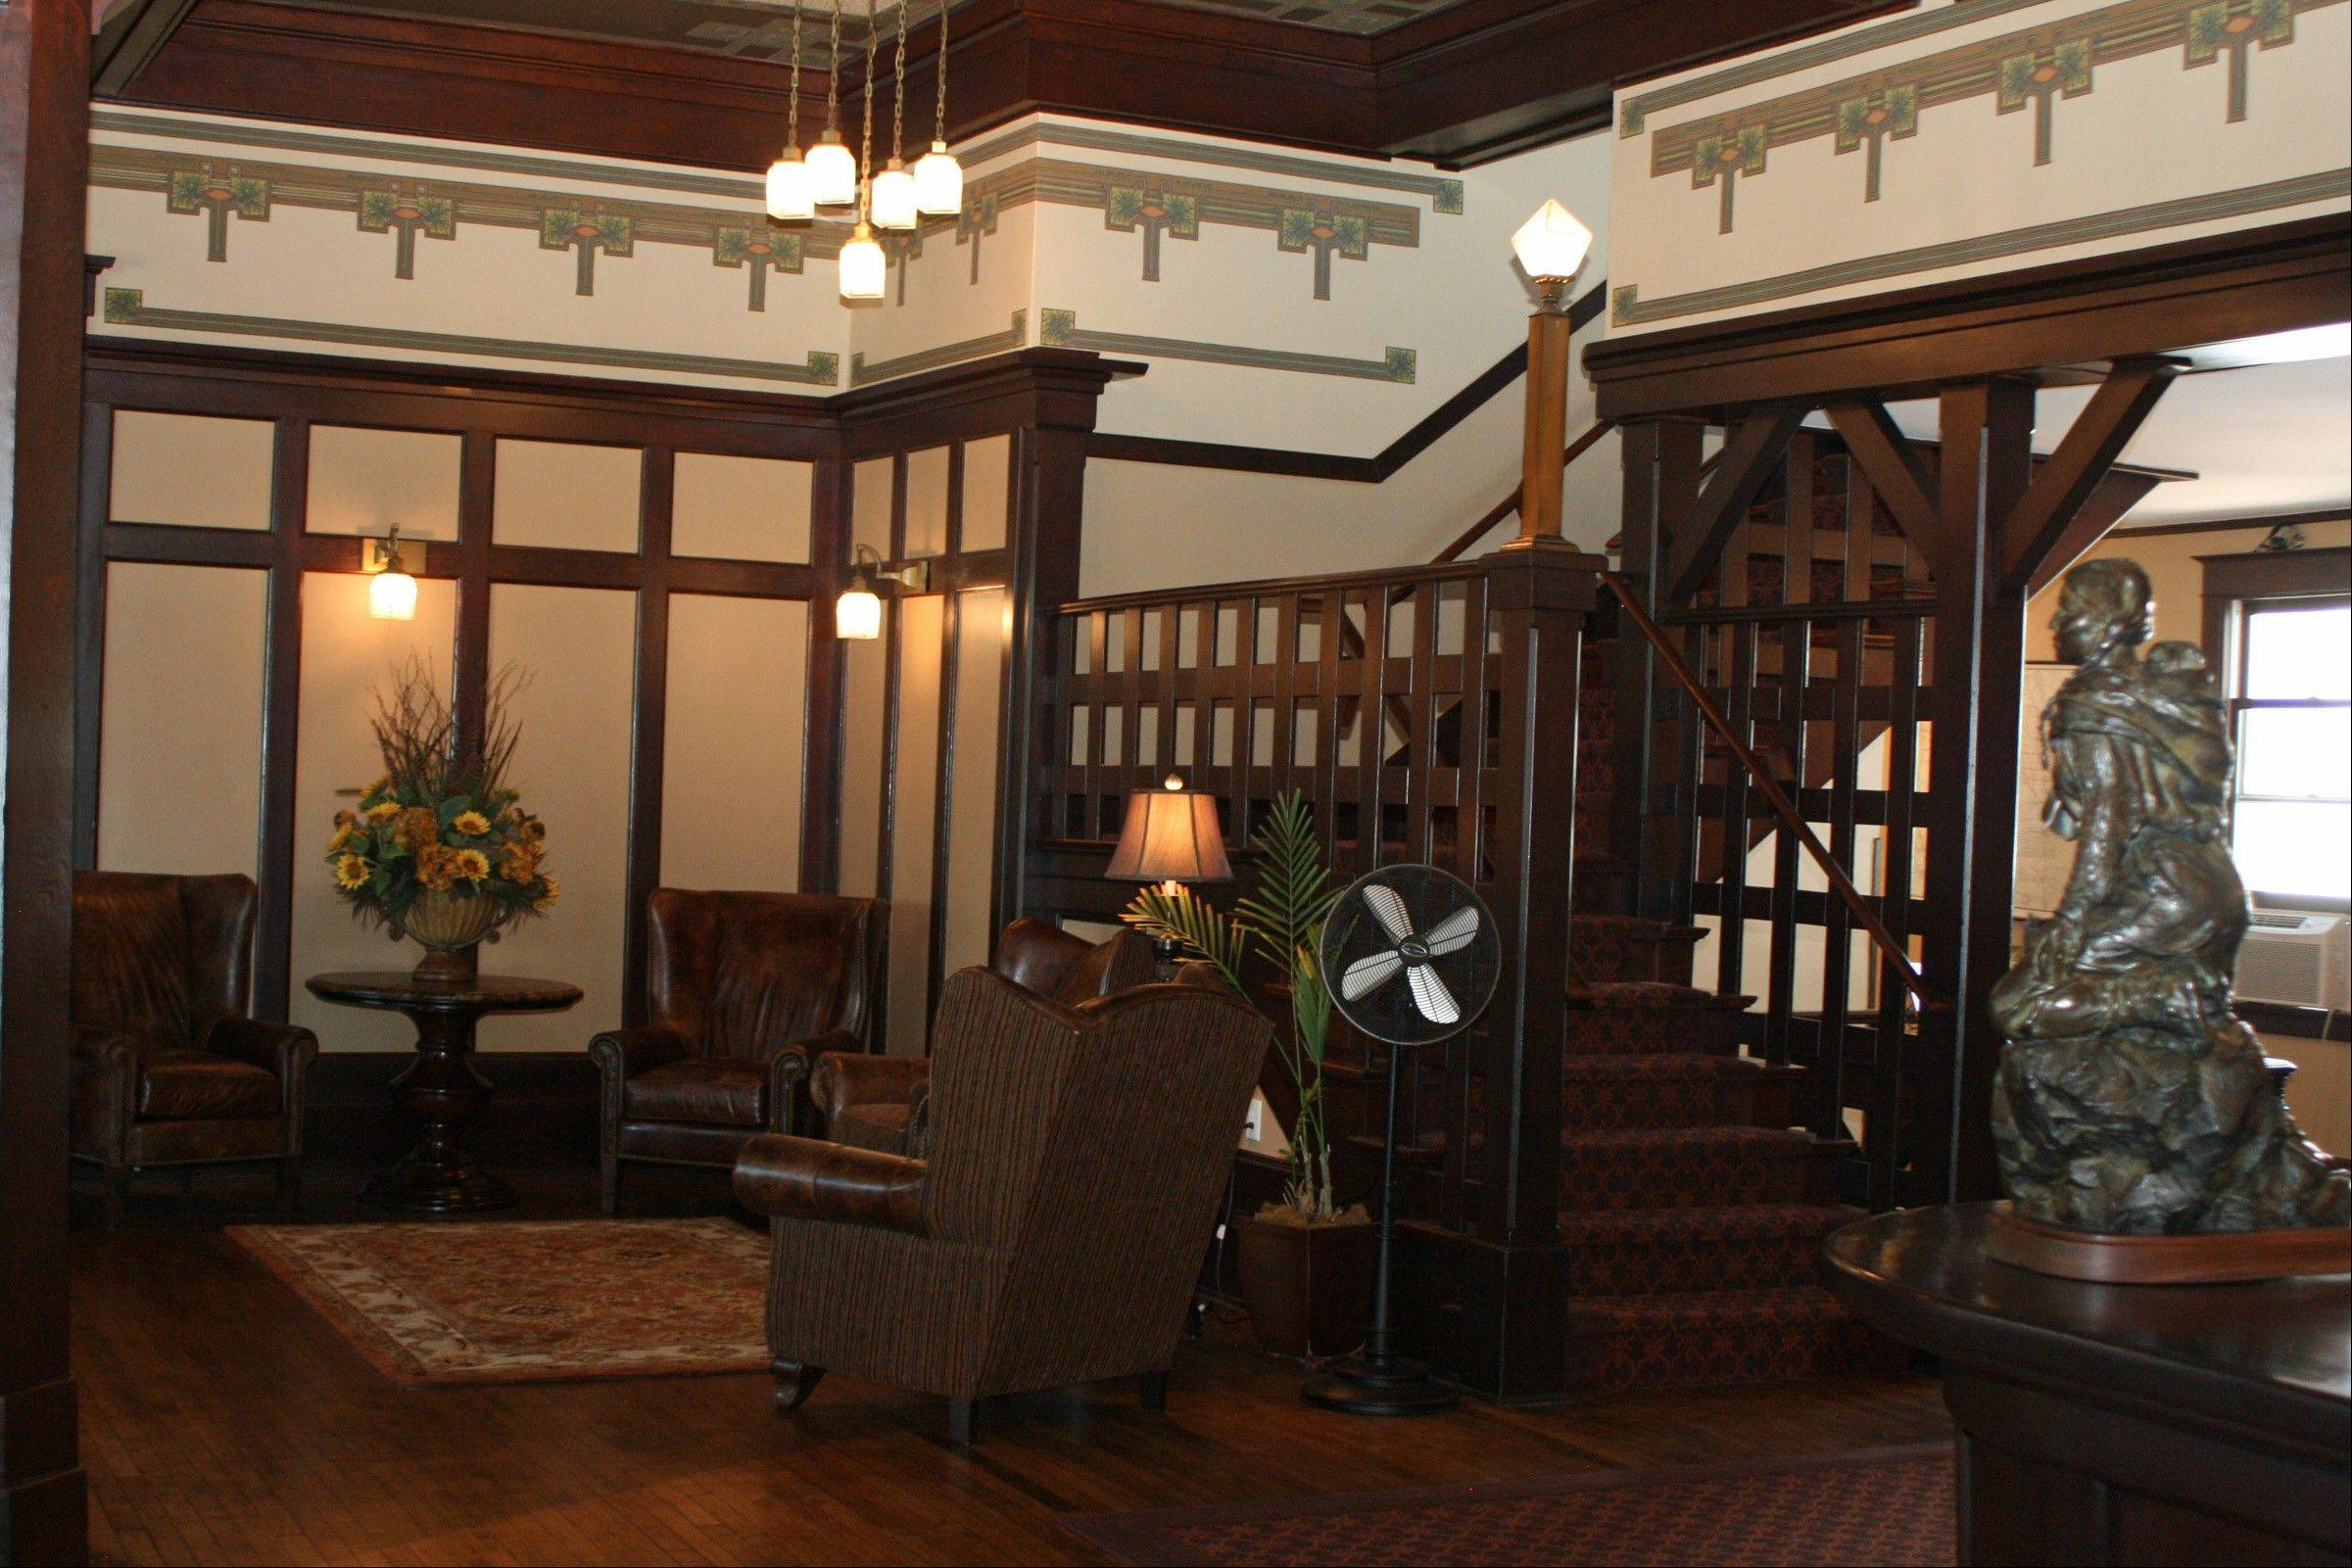 Dark wood dominates the decor of the Sacajawea Hotel lobby.